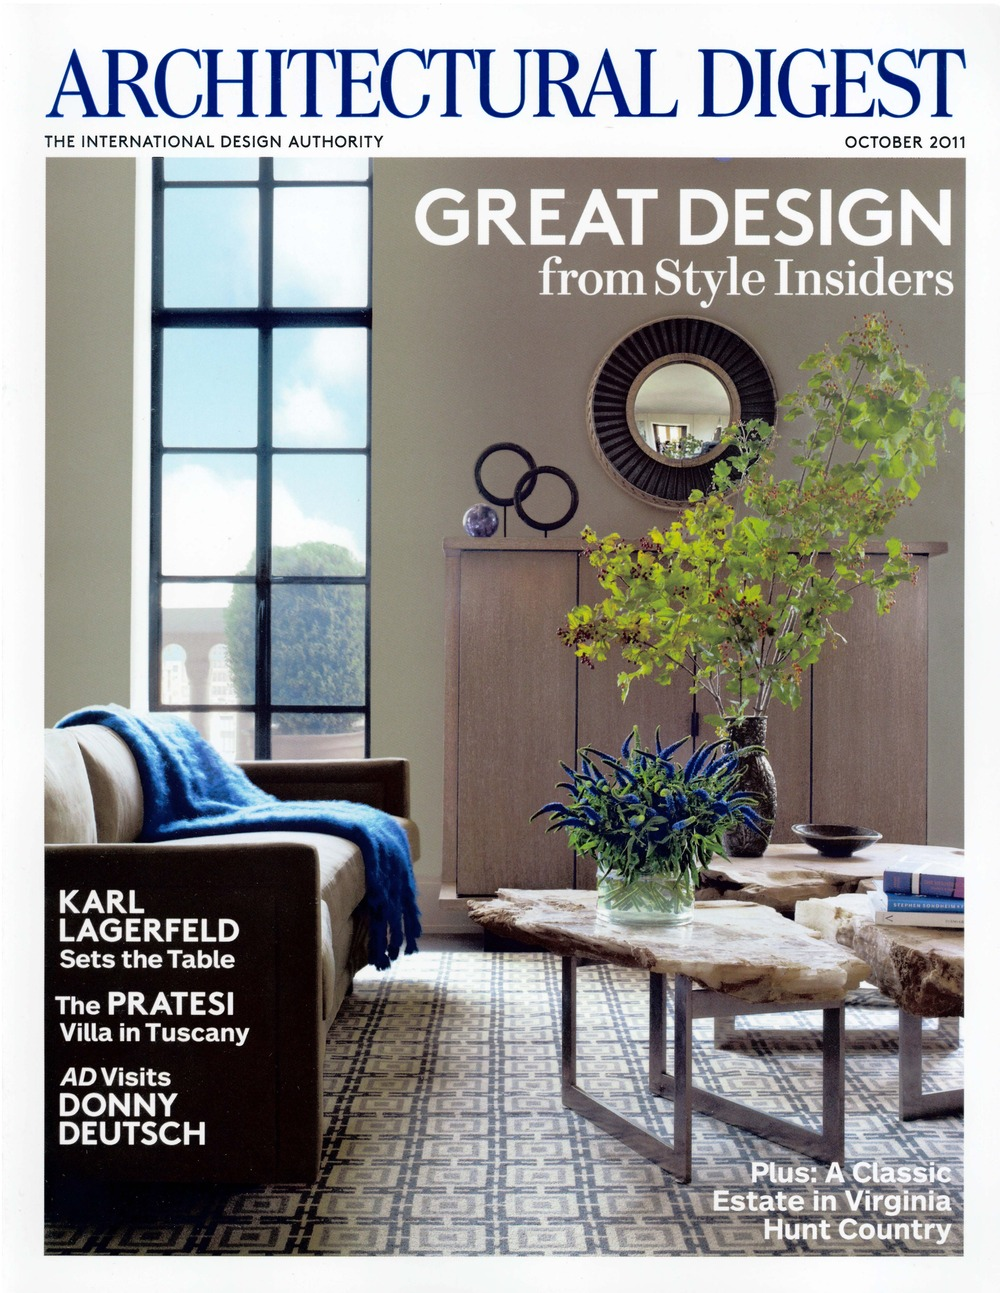 Read the Story on ArchitecturalDigest.com